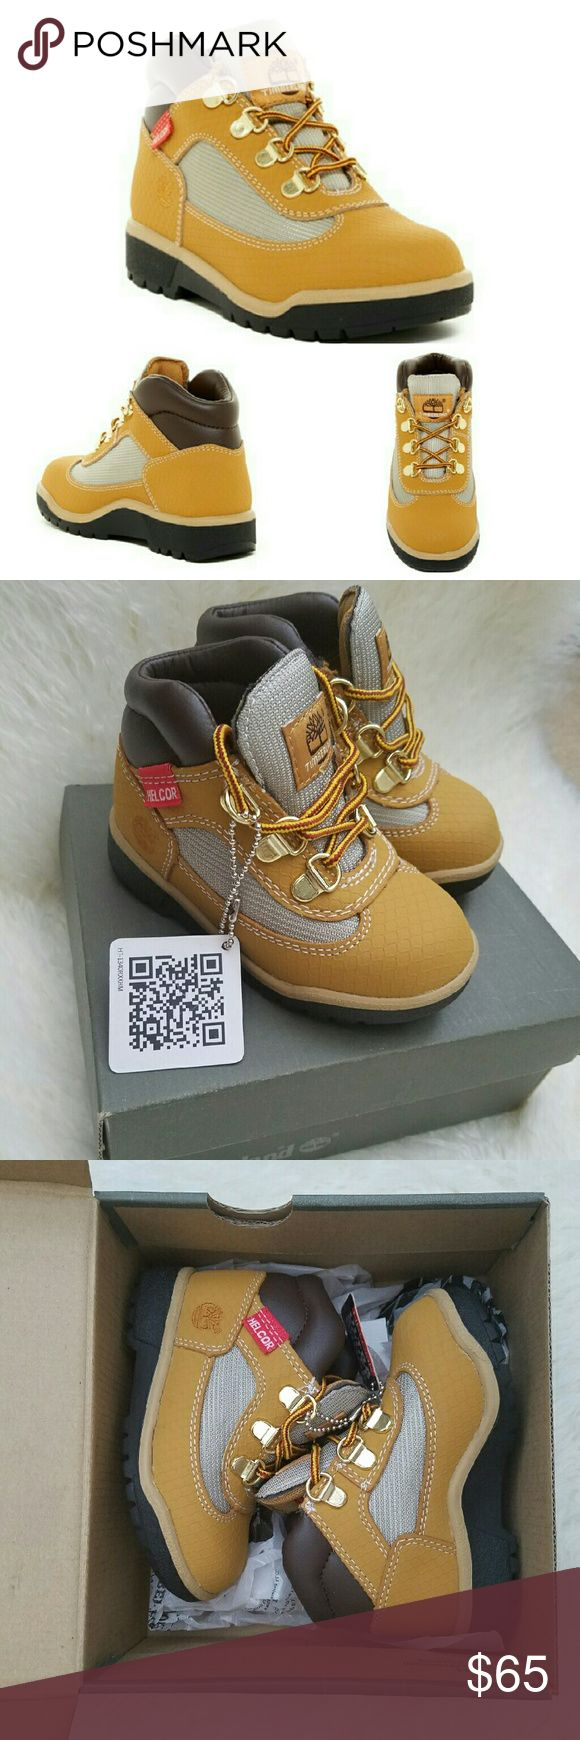 """Toddler Timberland Boots """"Give their little feet the coverage they need with the Timberland Field Boot Scuff Proof Boot. This kids' boot is constructed from a combination of waterproof, highly scuff-resistant Helcor? leather and breathable mesh textile with a D-ring lace closure and padded tongue and collar. The EVA footbed supports every step; the textile lining and sockliner move move moisture away from the foot."""" Non-marking sole. Leather and textile upper, manmade sole (info from…"""